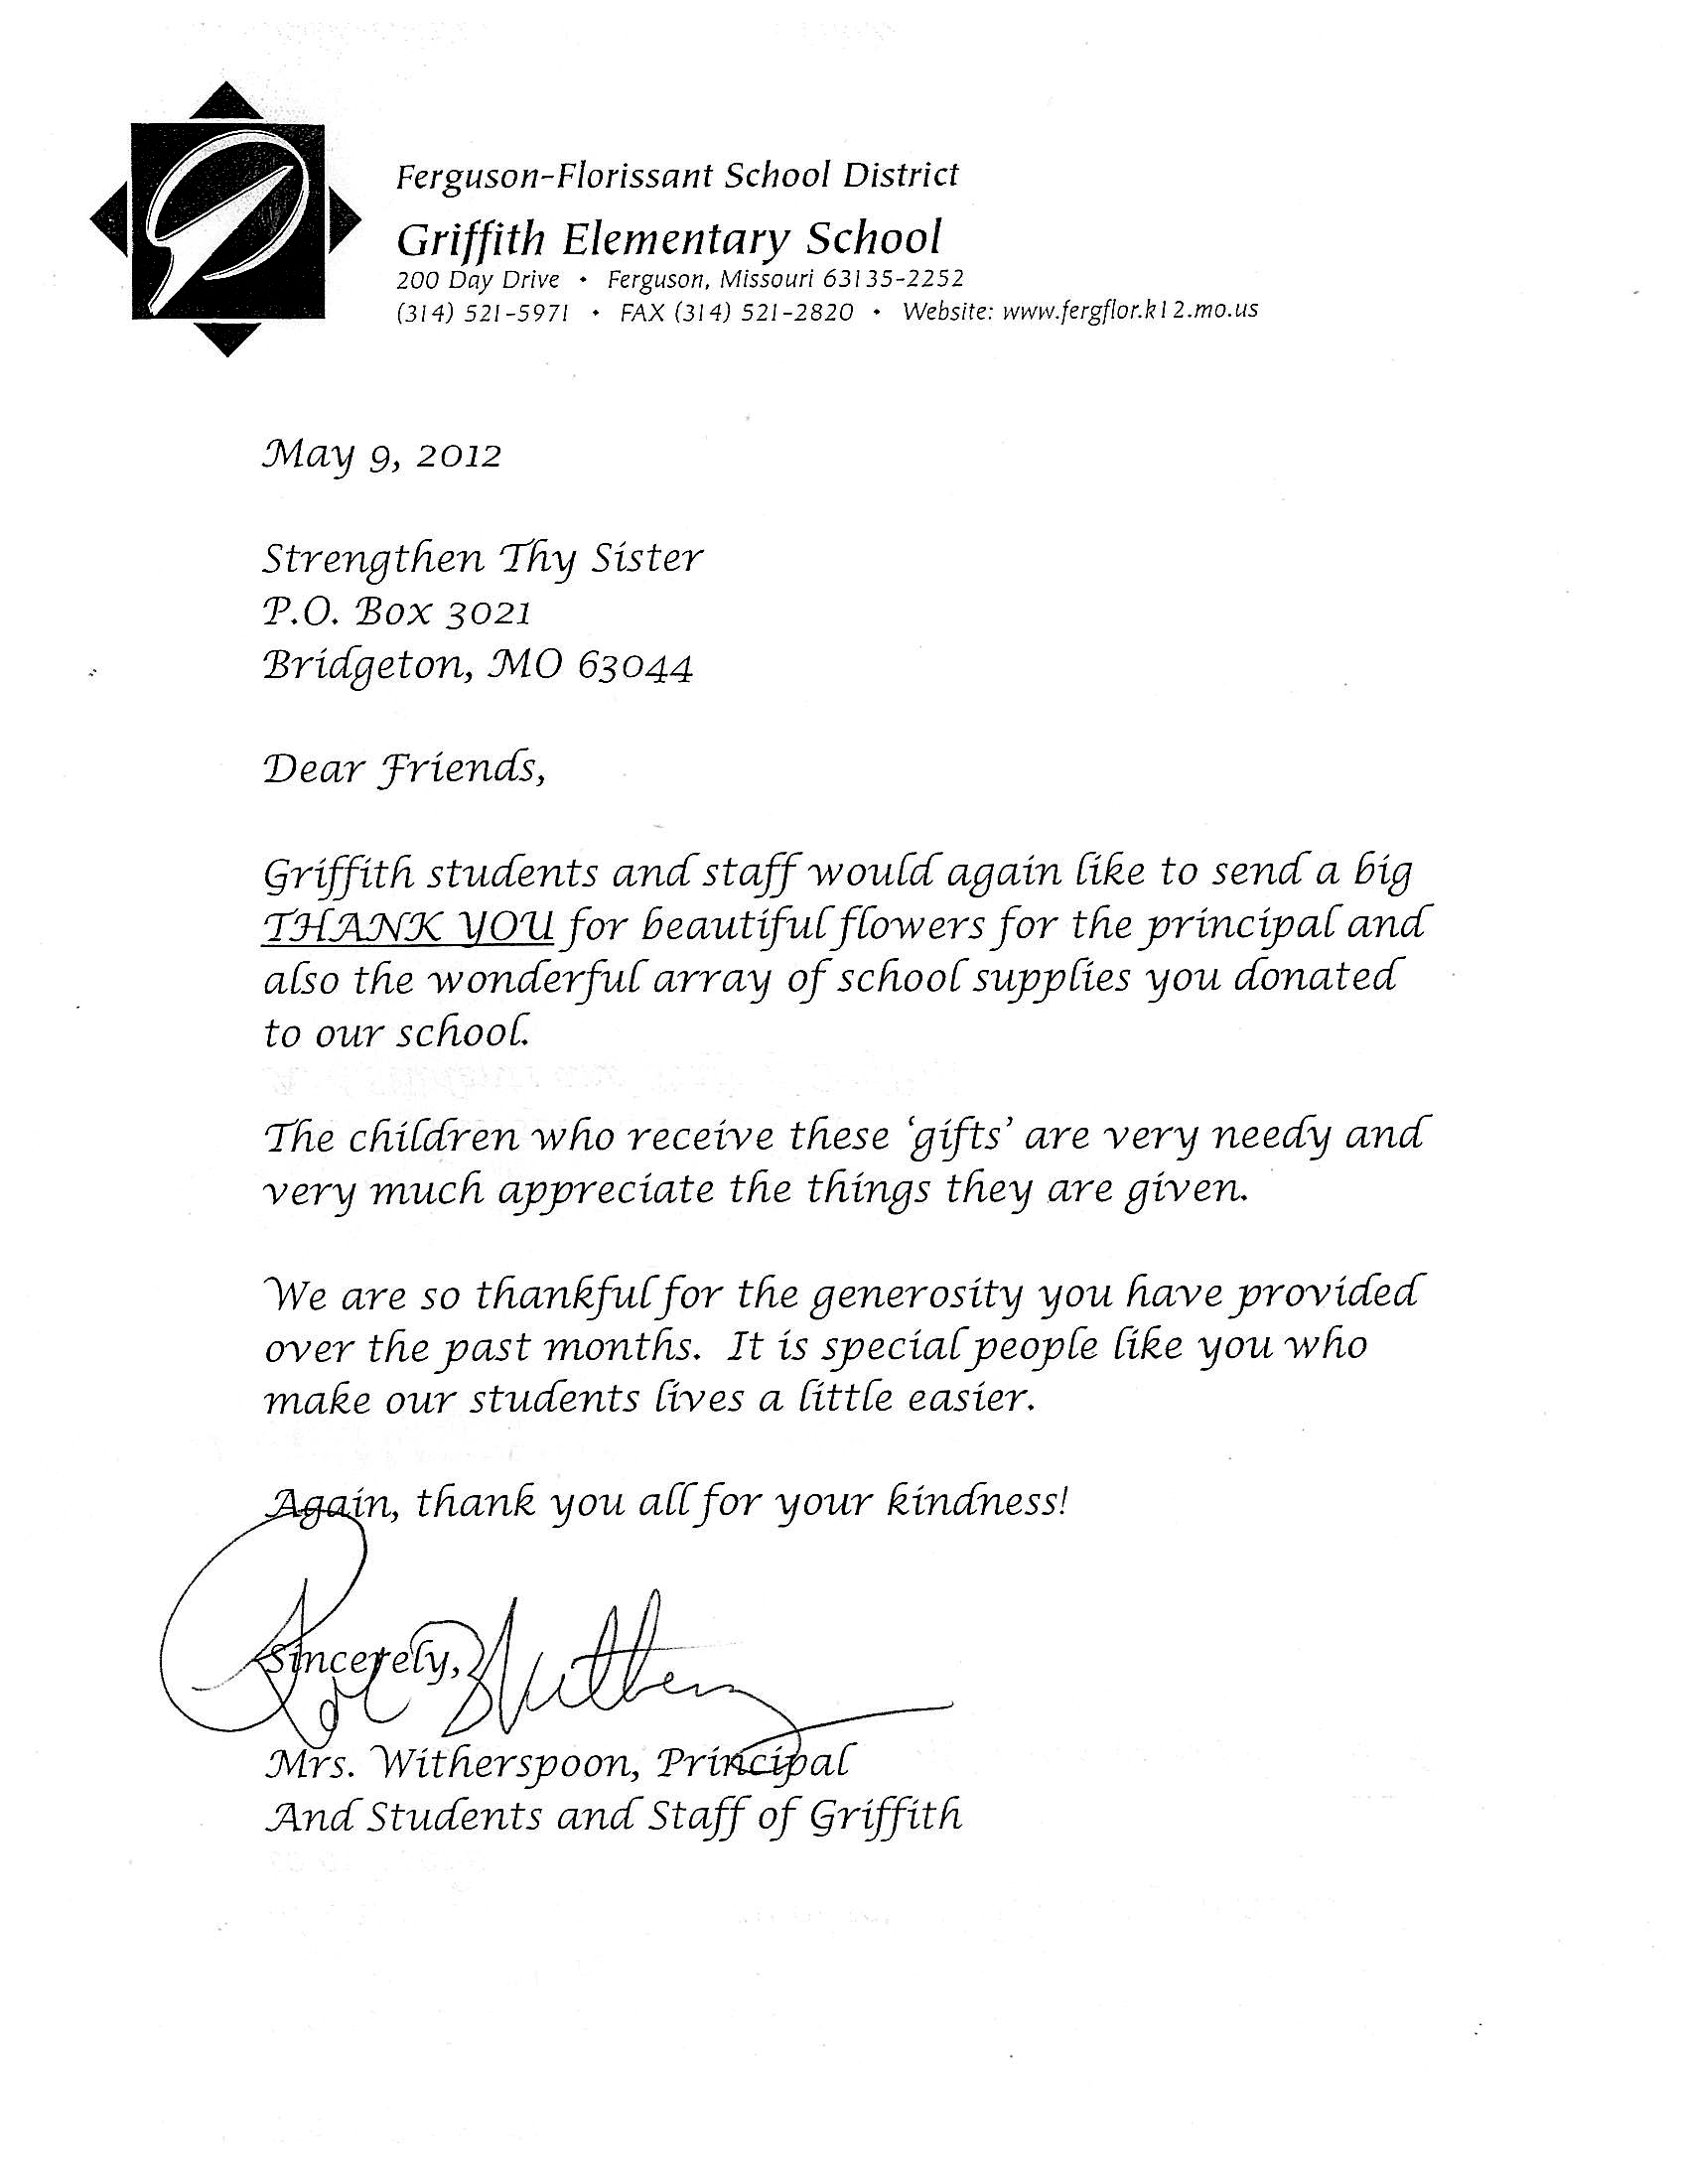 CommunityInitiatives – Community Service Letter